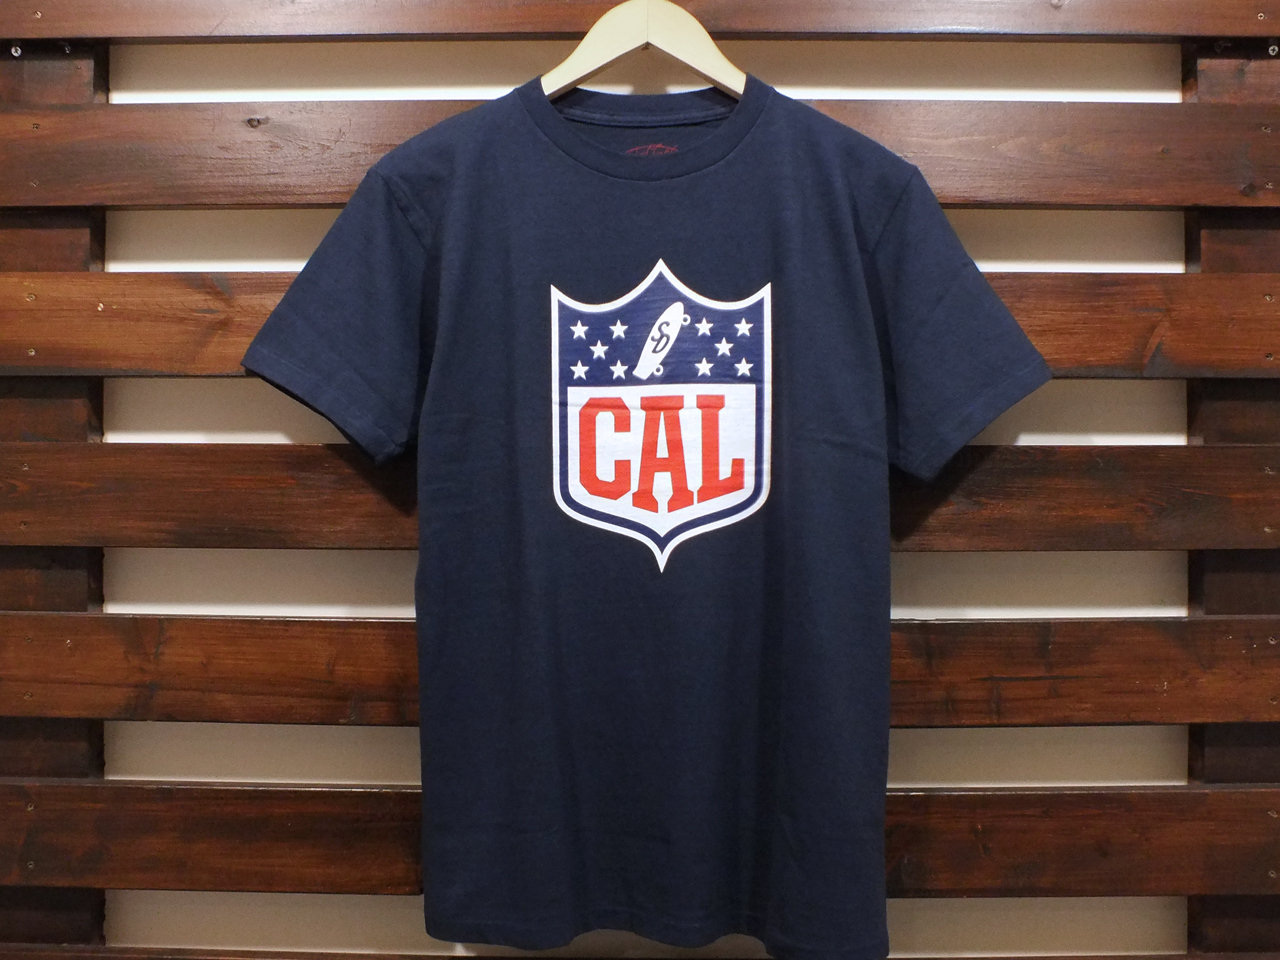 STANDARD CALIFORNIA CAL SHIELD LOGO T-SHIRT NAVY 「メール便OK」